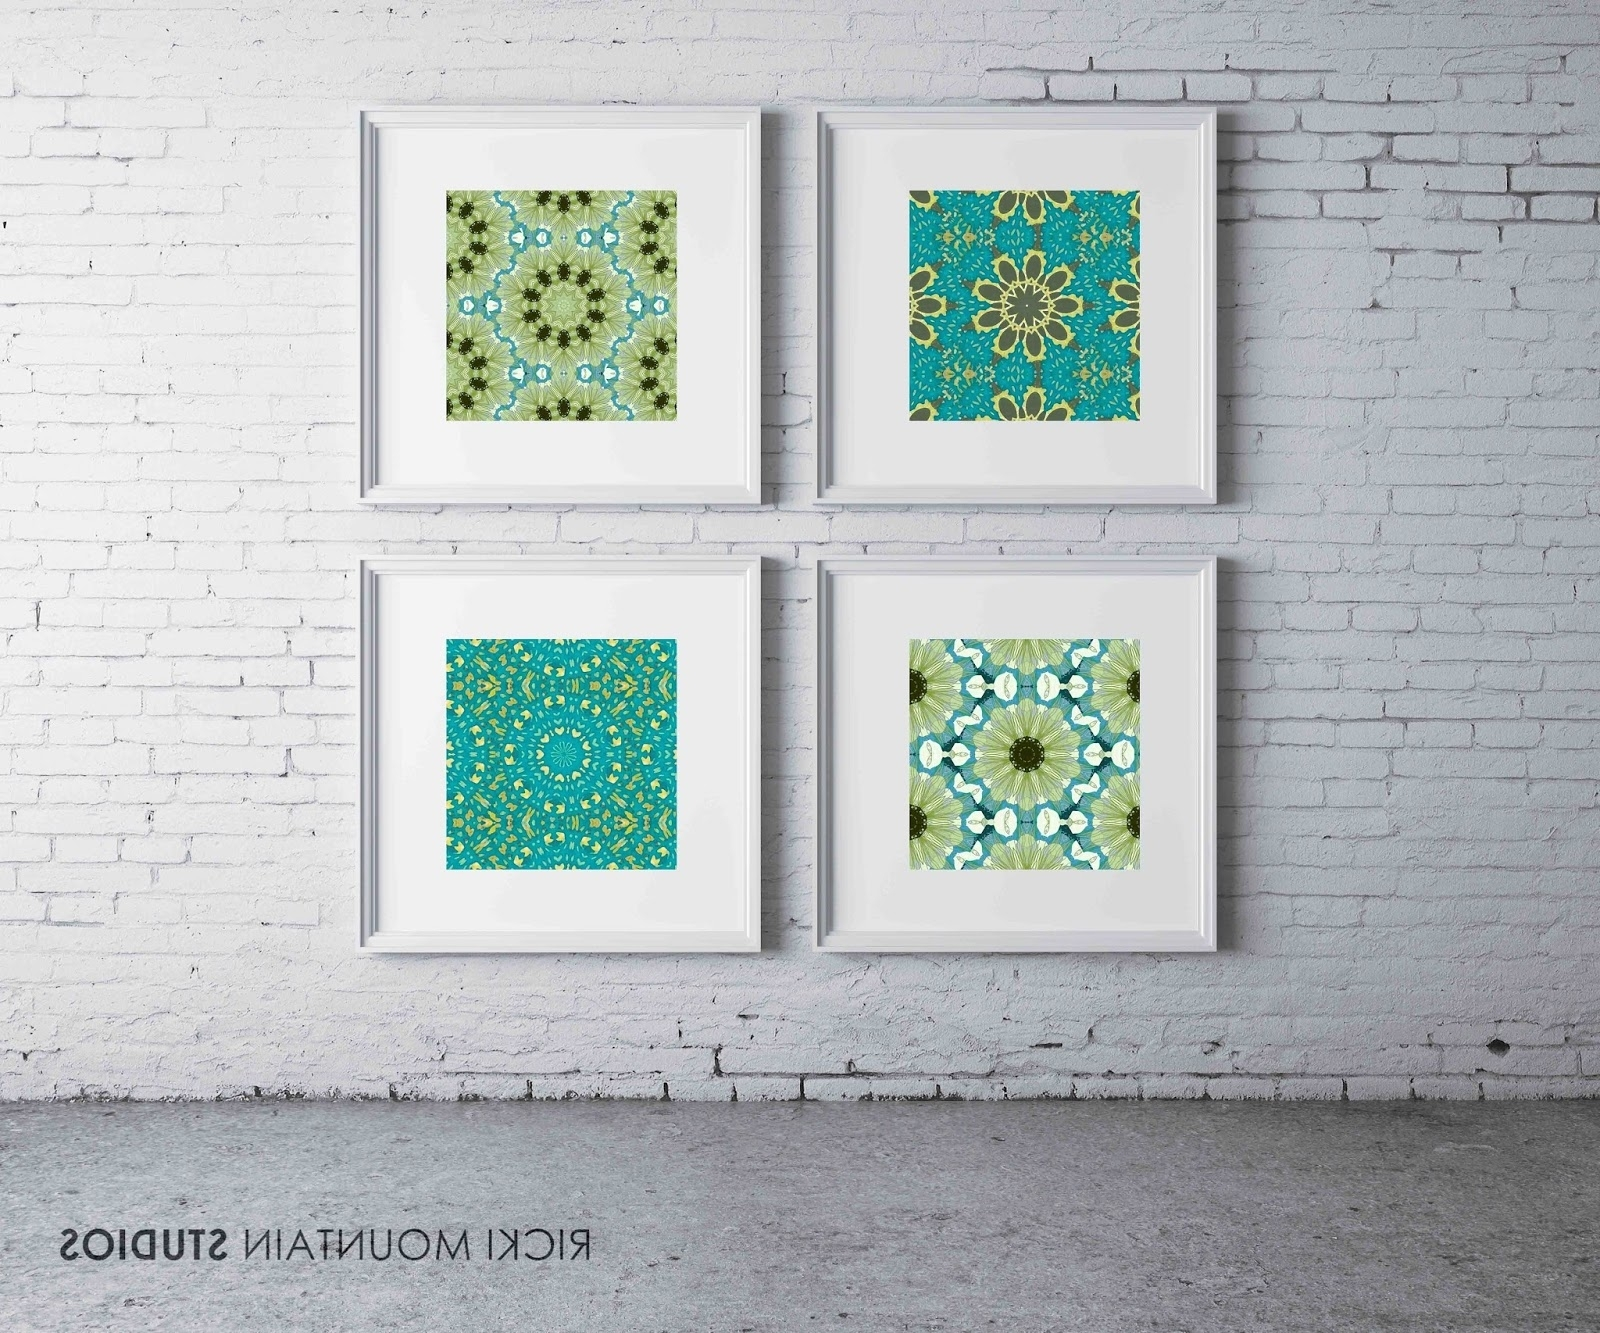 2018 Framed Art Prints For A Love Of Symmetry, Pattern And Color (View 1 of 15)